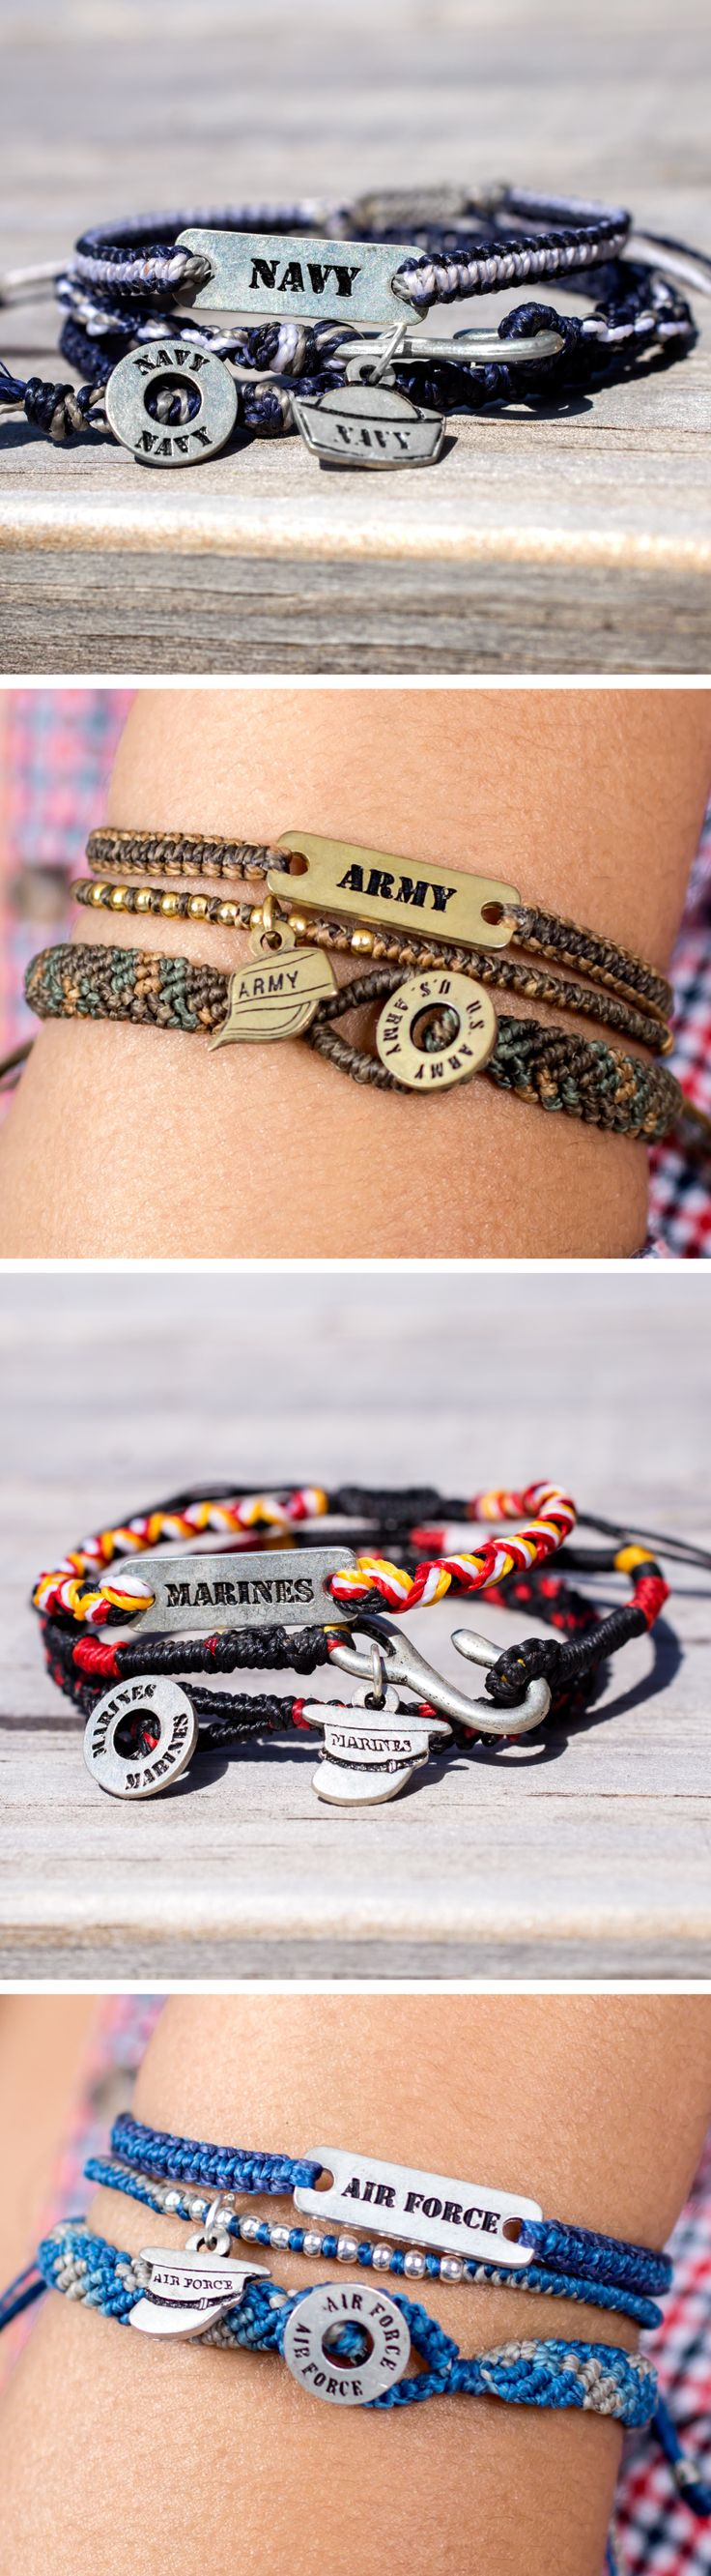 Woven with waxed thread and accented with metal beads and patriotic charms, this bracelet boasts your love of country and pride in those defending it.